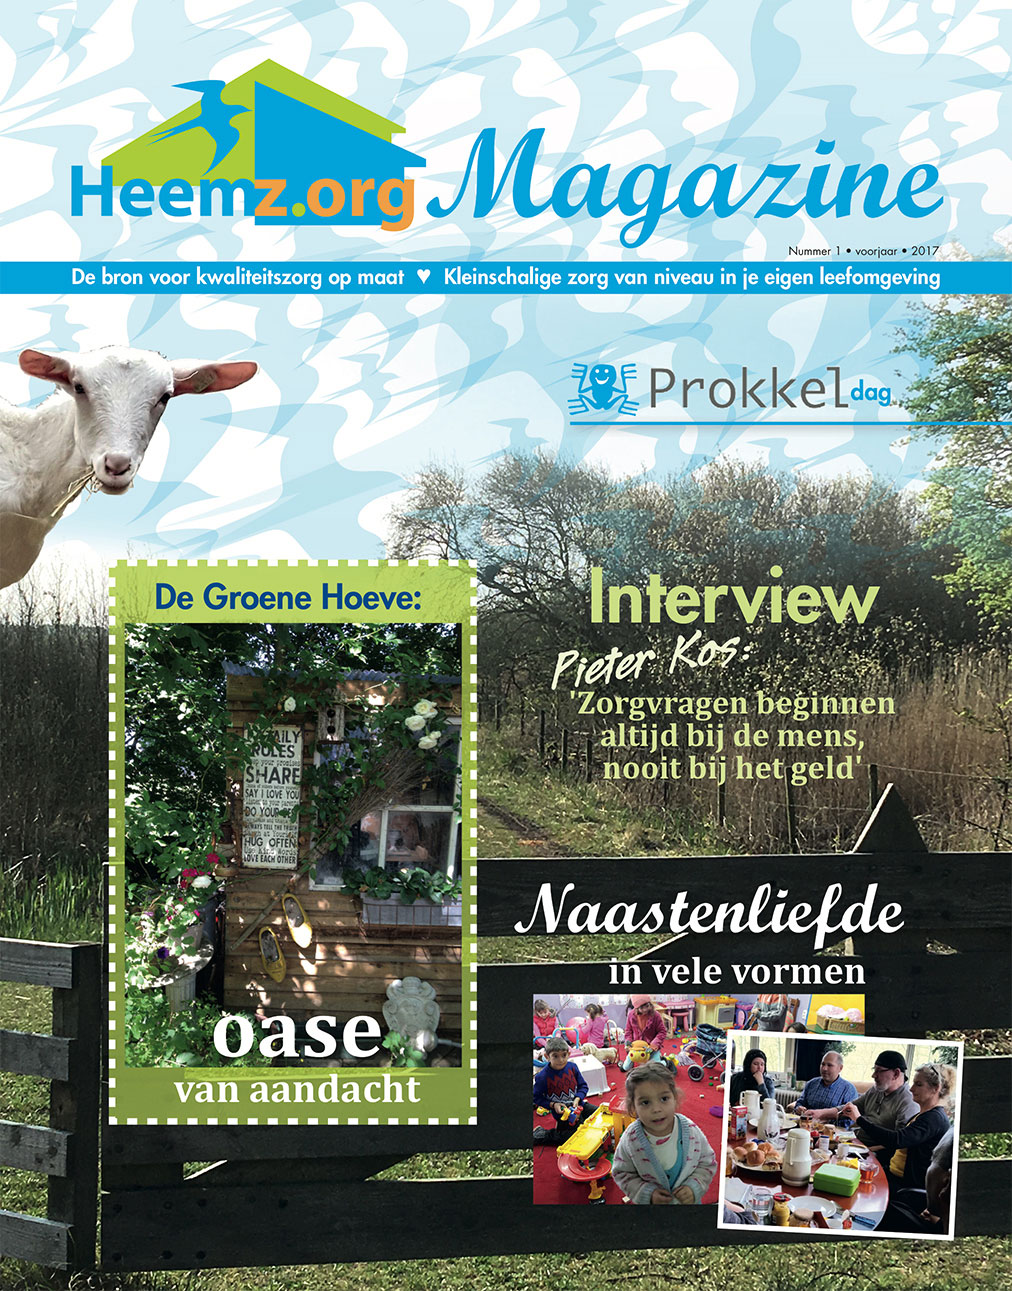 Heemz.org Magazine nr. 1 2017 nu digitaal te downloaden